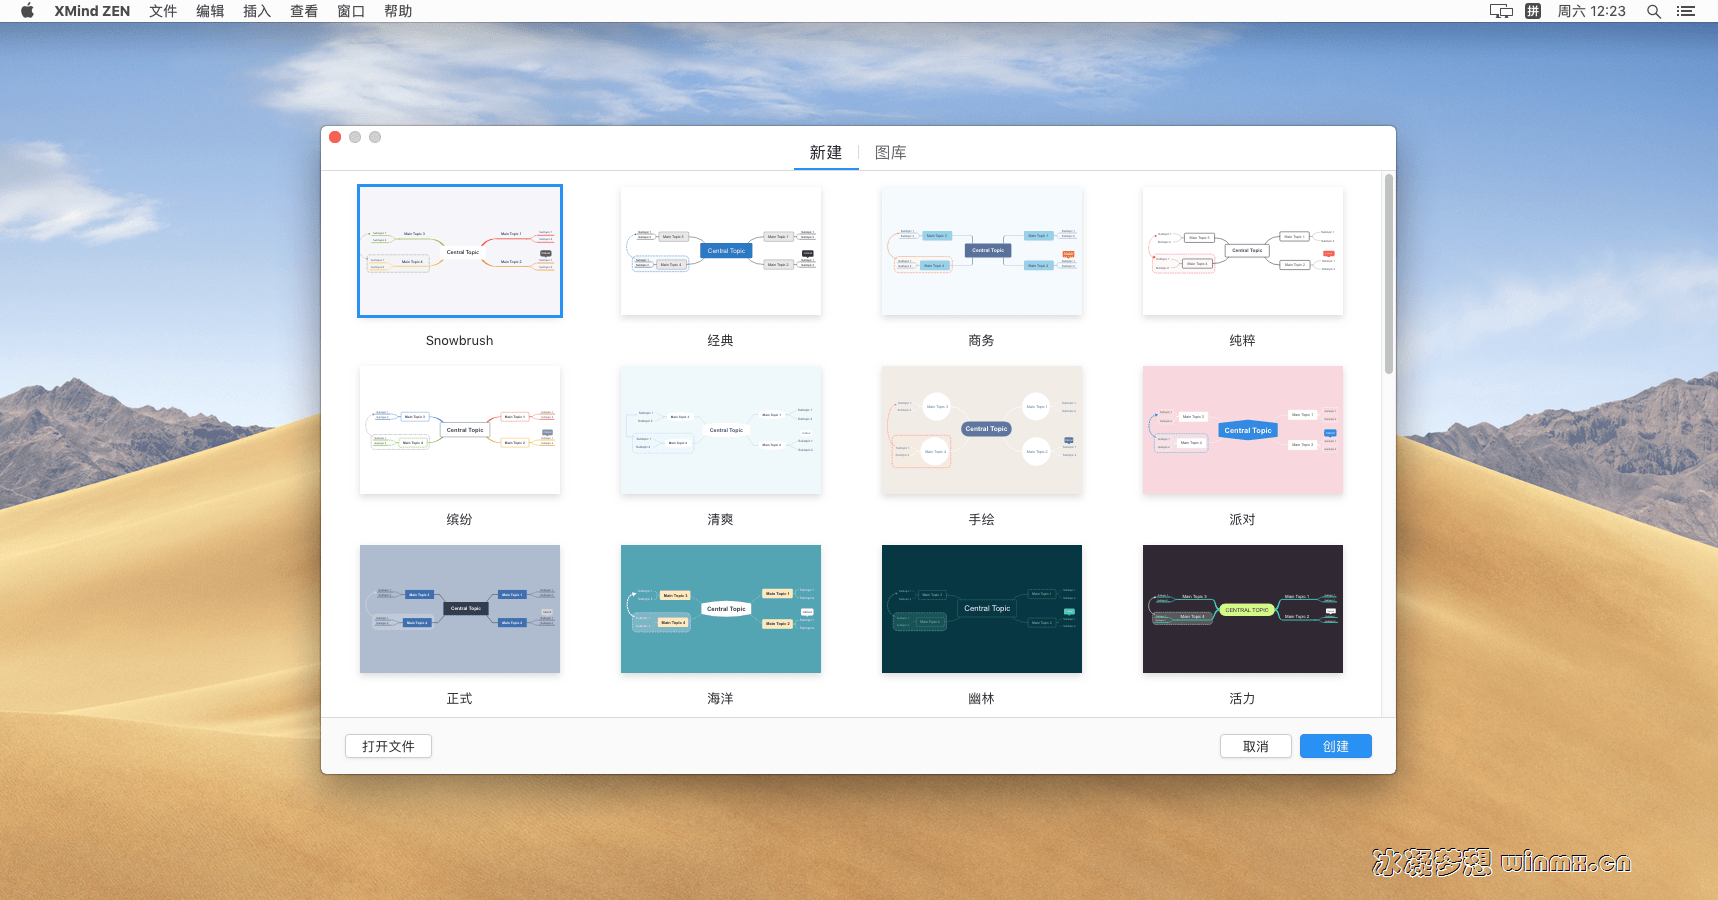 思维导图 XMind ZEN for Mac 9.1.3 中文破解版